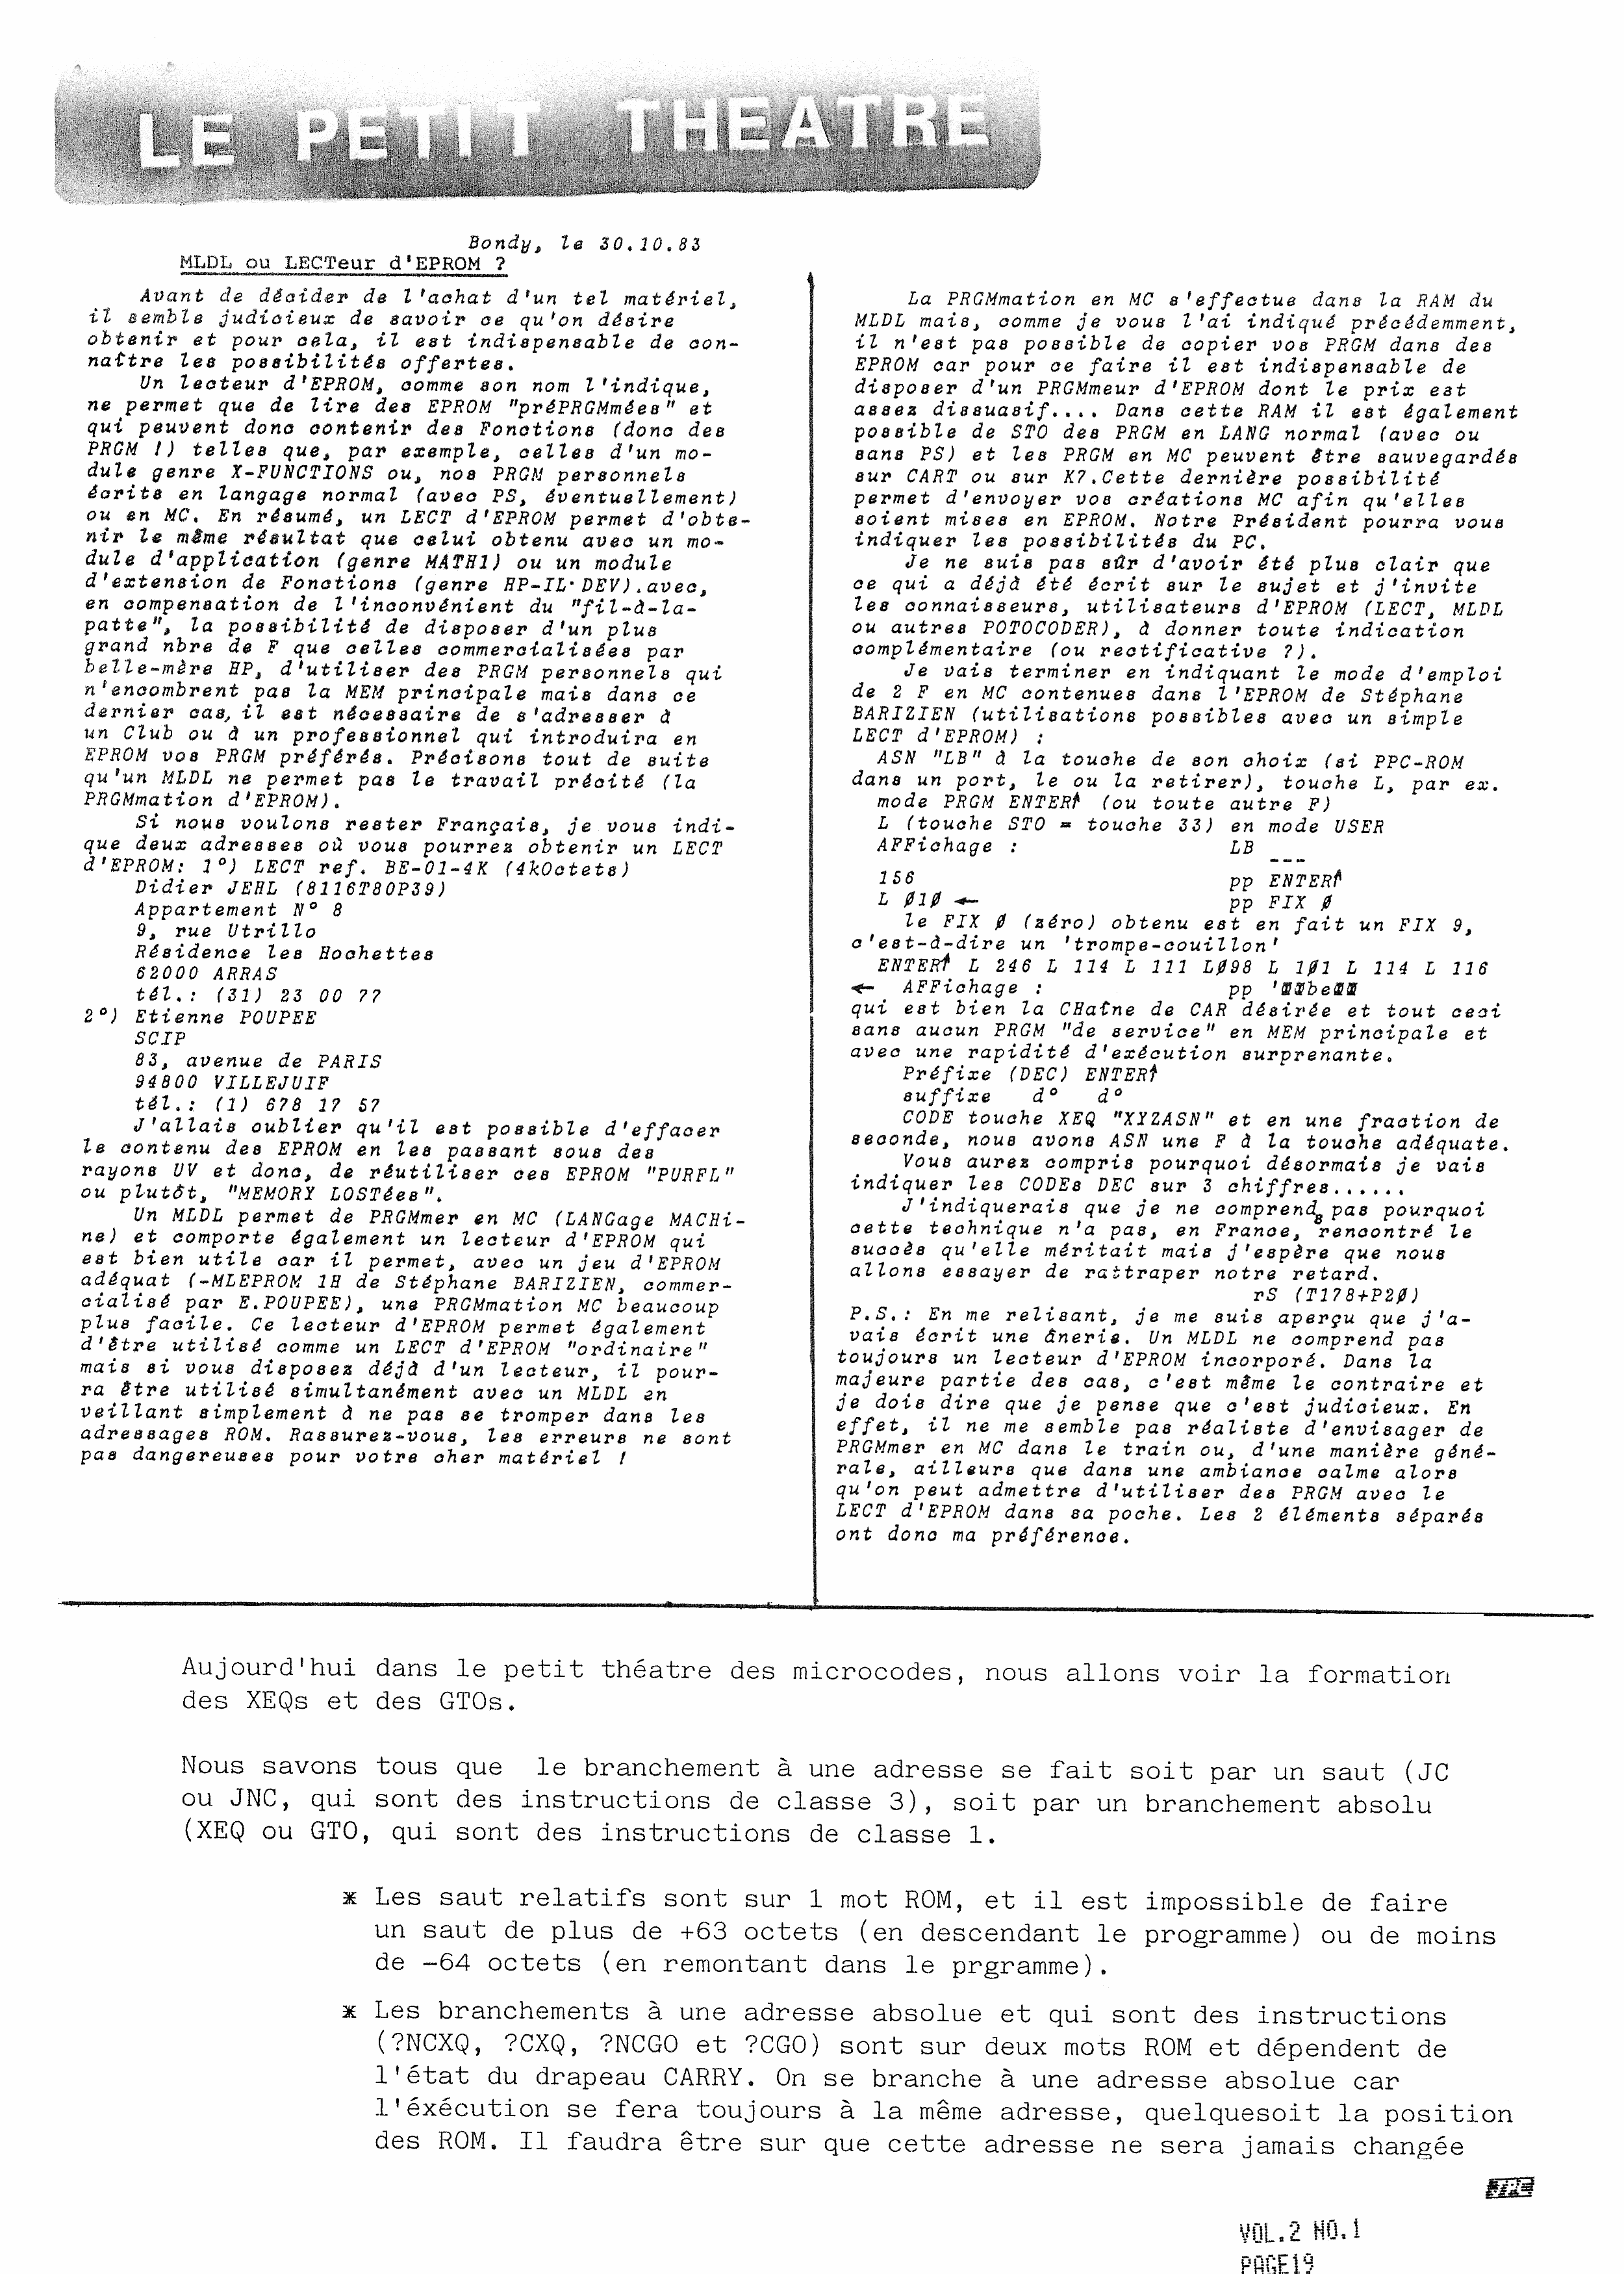 Jp-11-page-20-1000